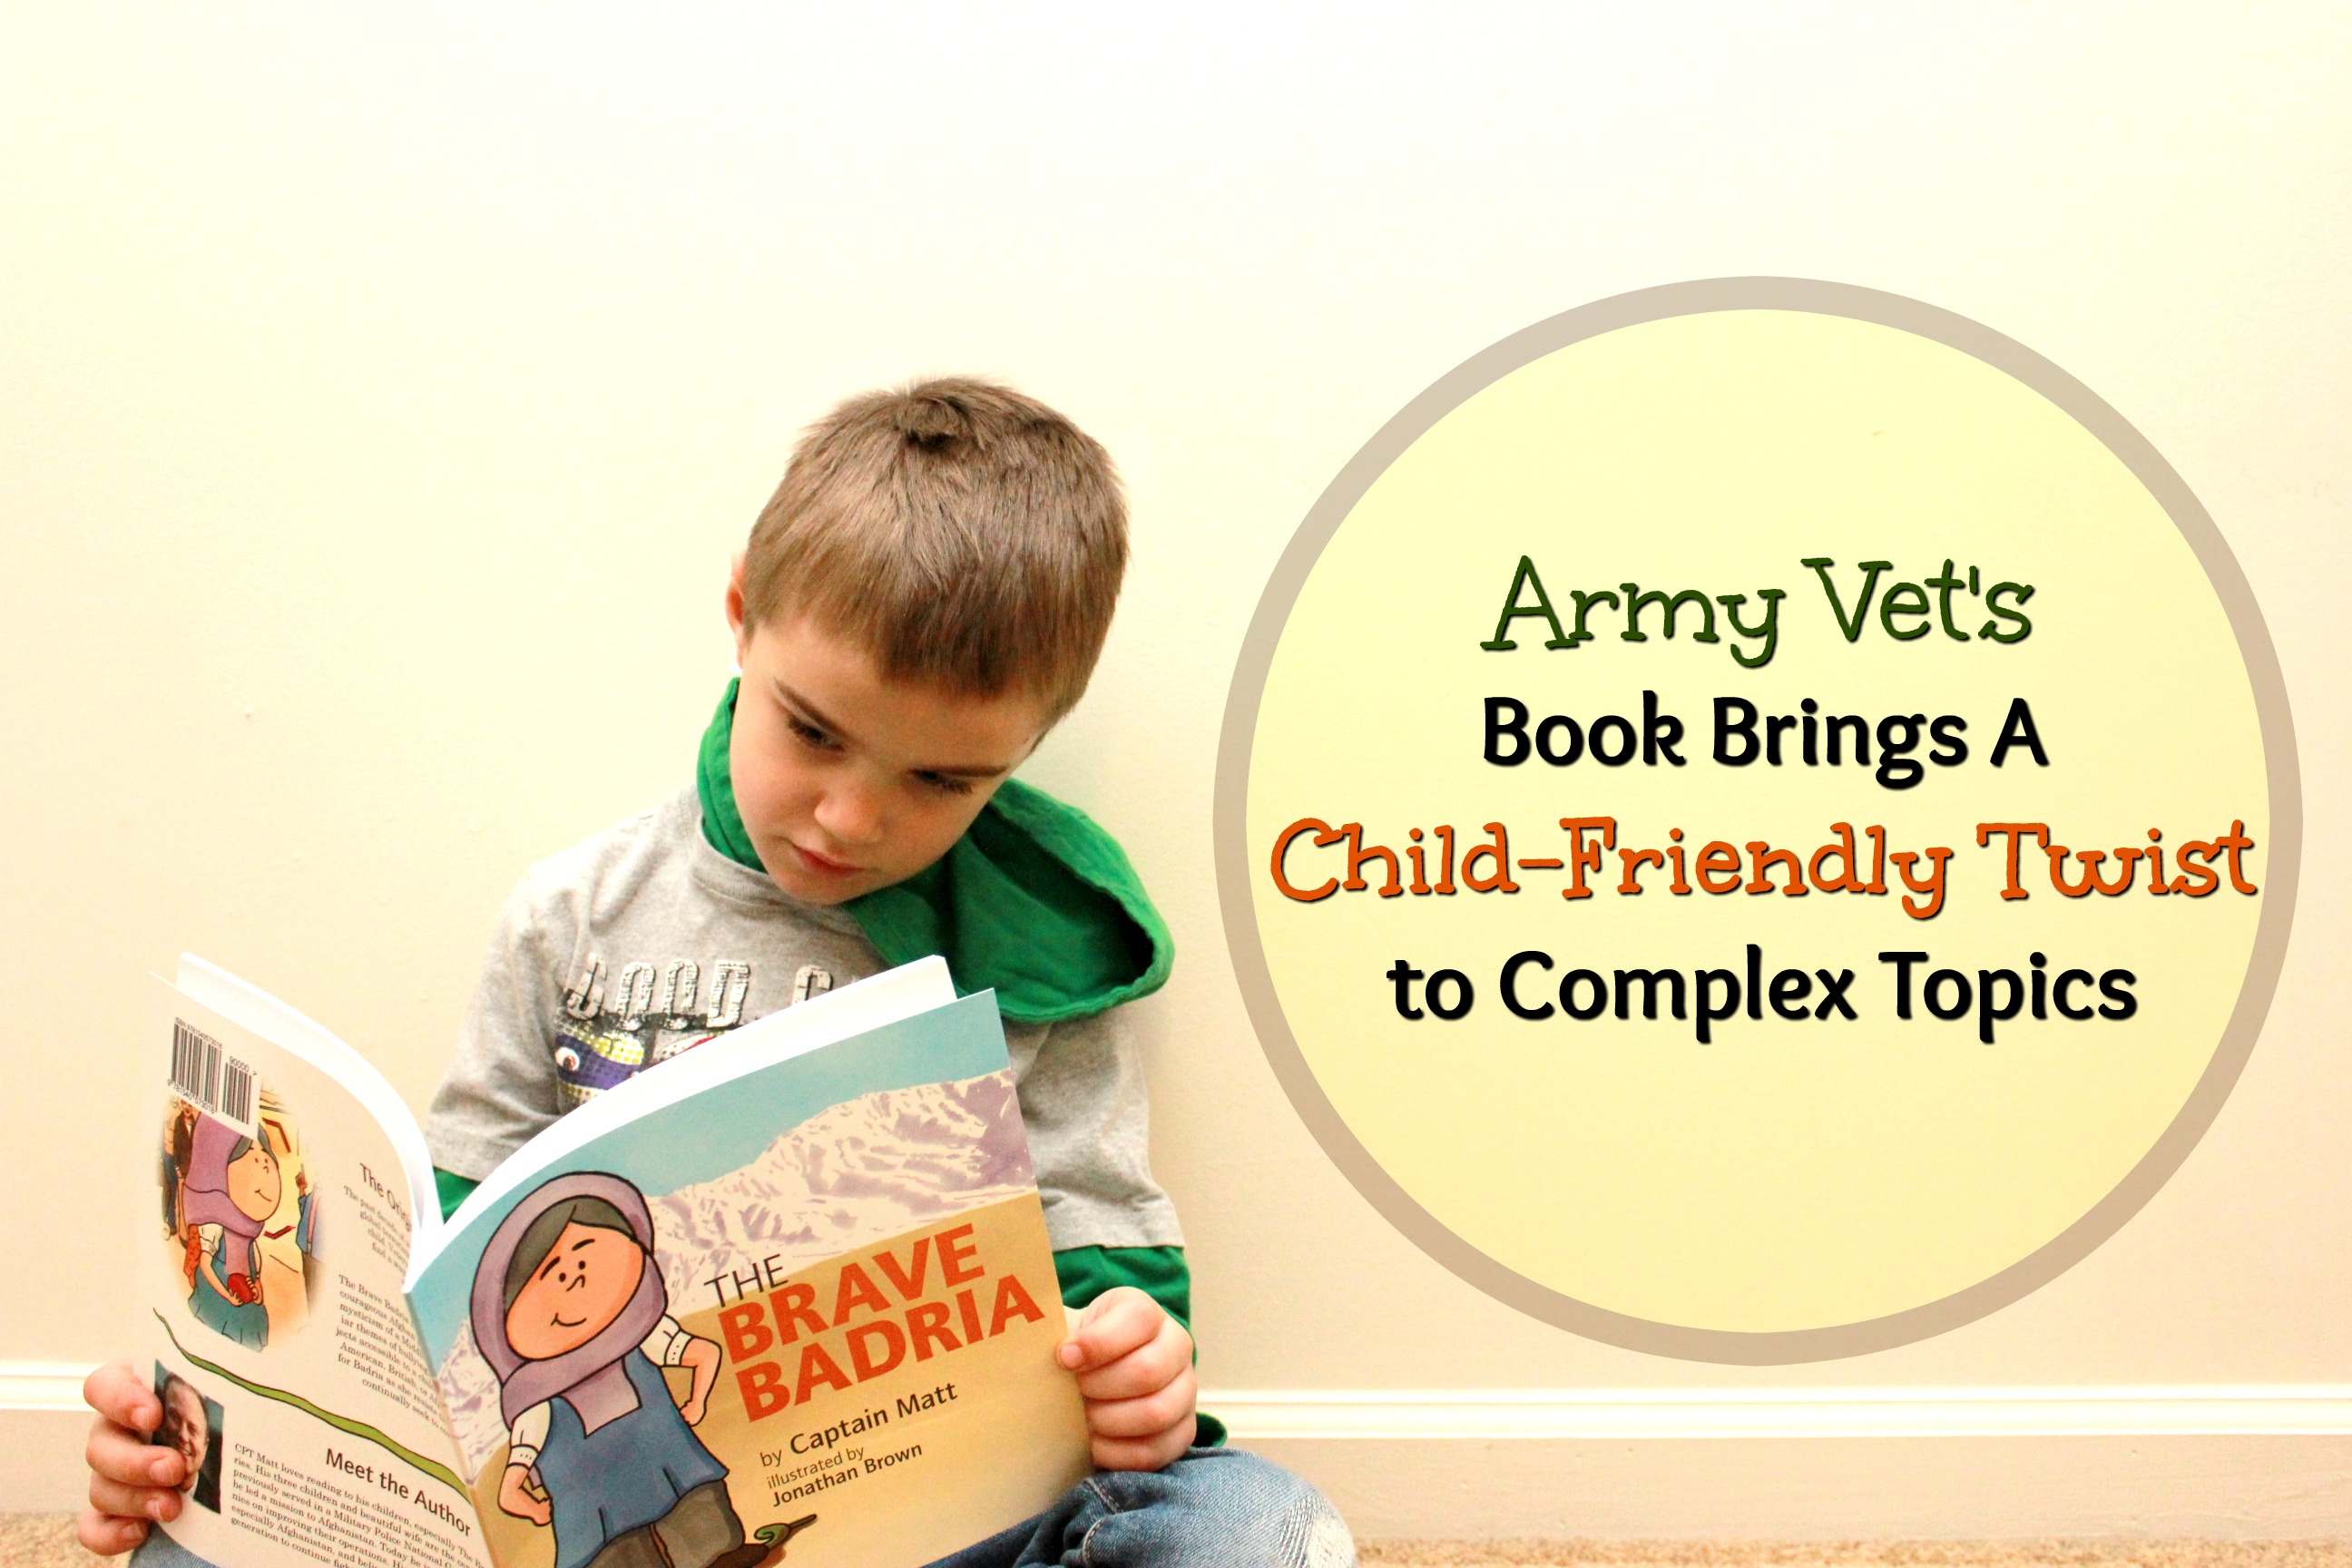 Army Vet's Book Brings a Child-Friendly Twist to Complex Topics